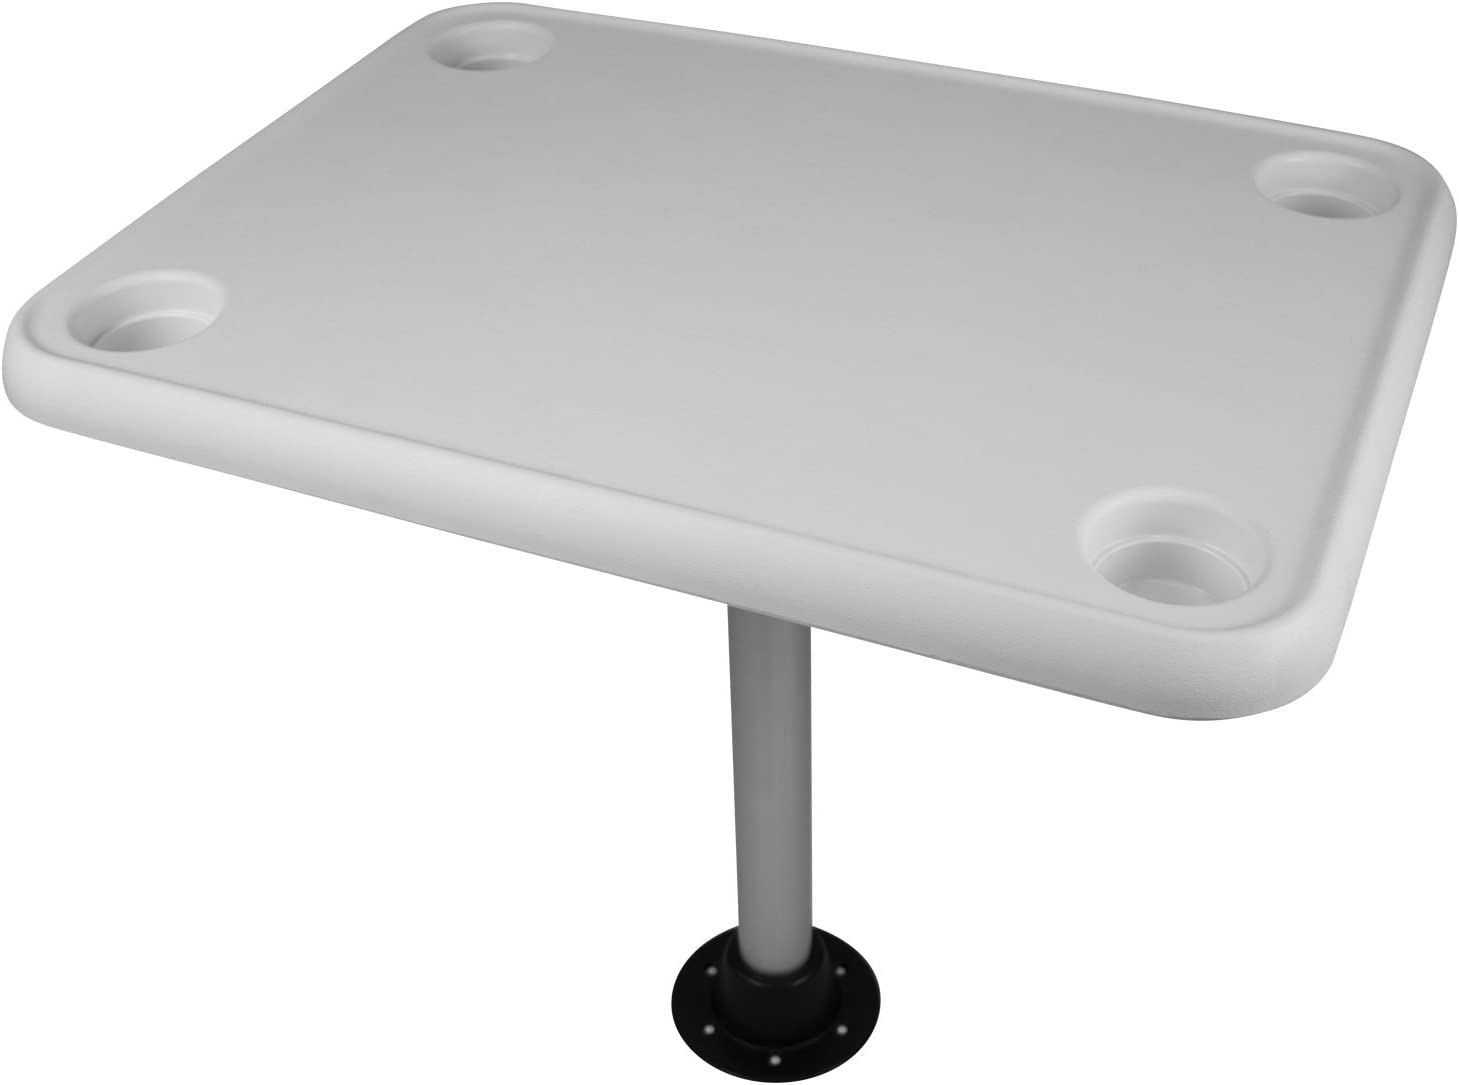 32 Inch x 16 Inch Oval Table Top Kit for Boats Add a Table to any Boat